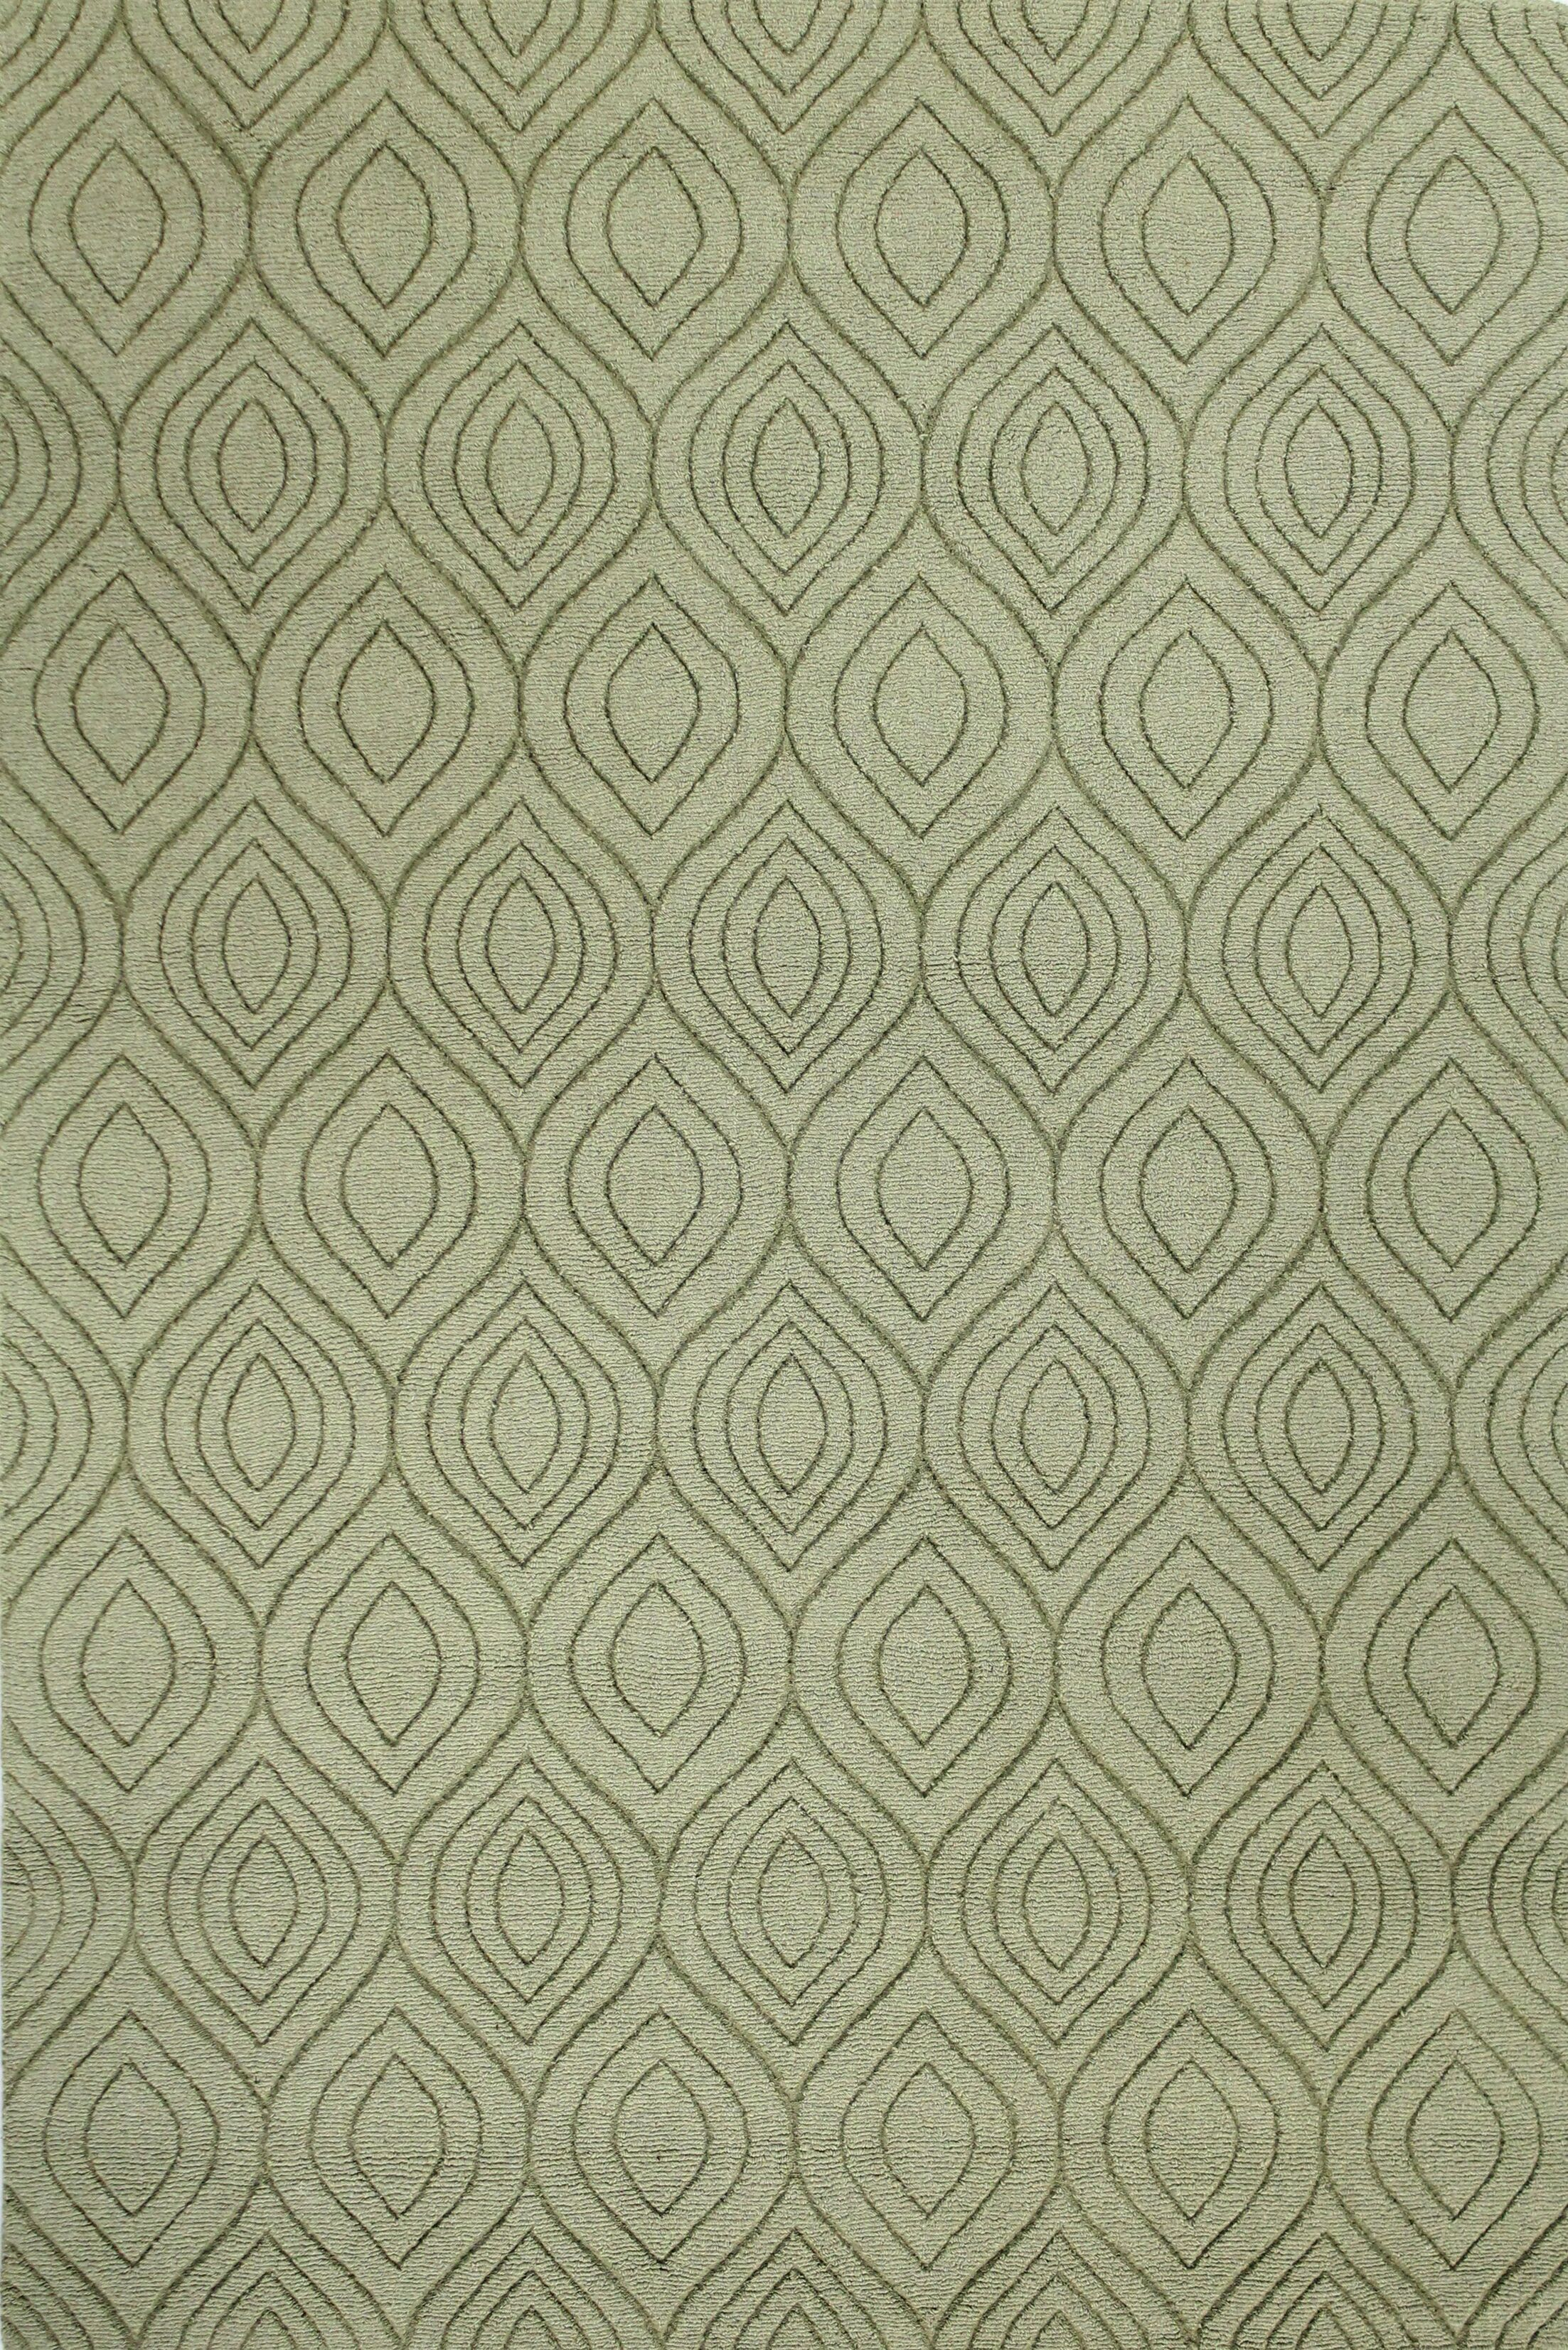 Orion Hand-Woven Light Green Area Rug Rug Size: Rectangle 7'6